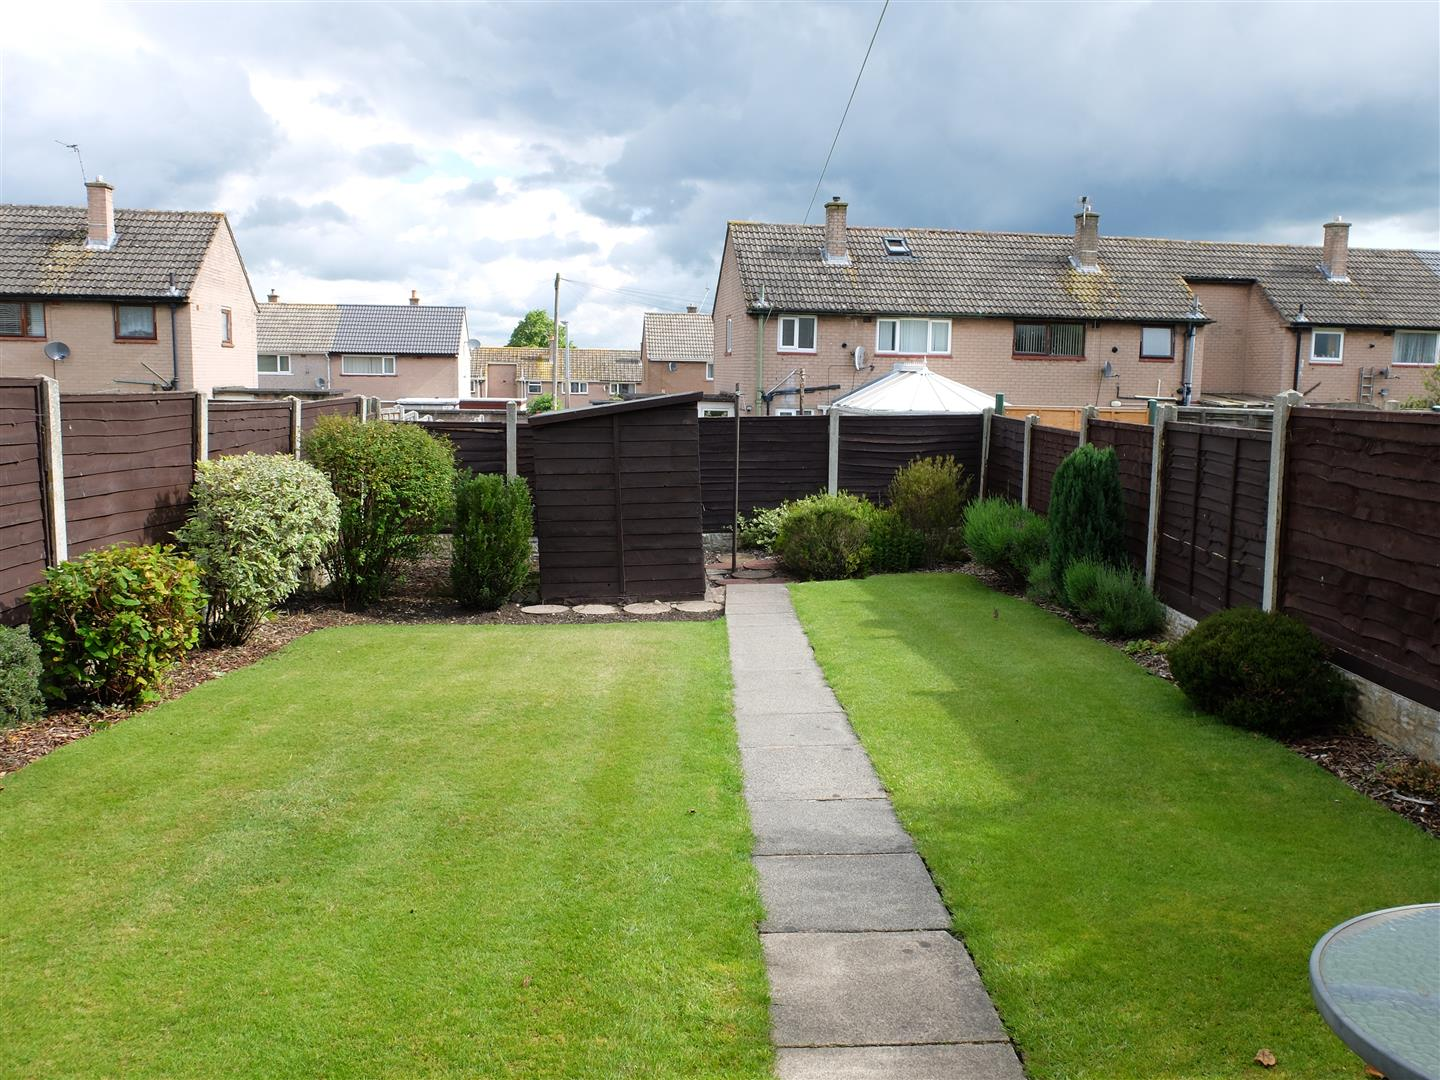 3 Bedrooms House - Mid Terrace For Sale 79 Westrigg Road Carlisle